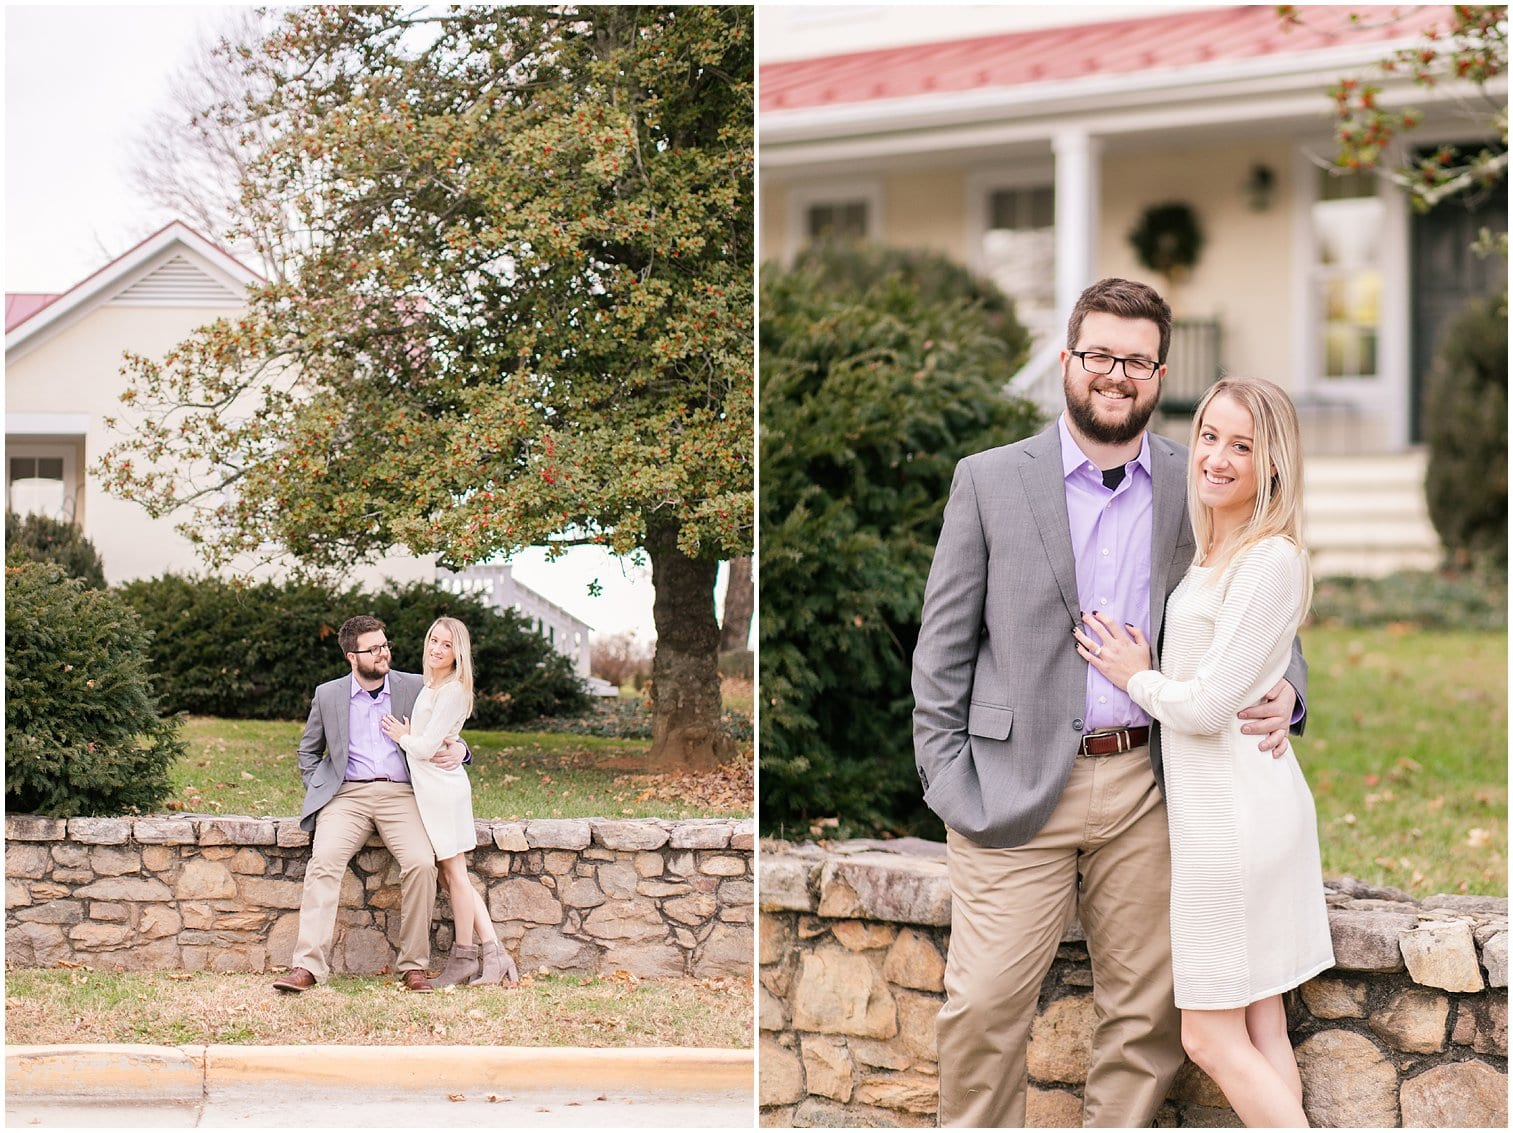 Downtown Middleburg Engagement Photos Virginia Wedding Photographer Megan Kelsey Photography Blair & Mike-190.jpg